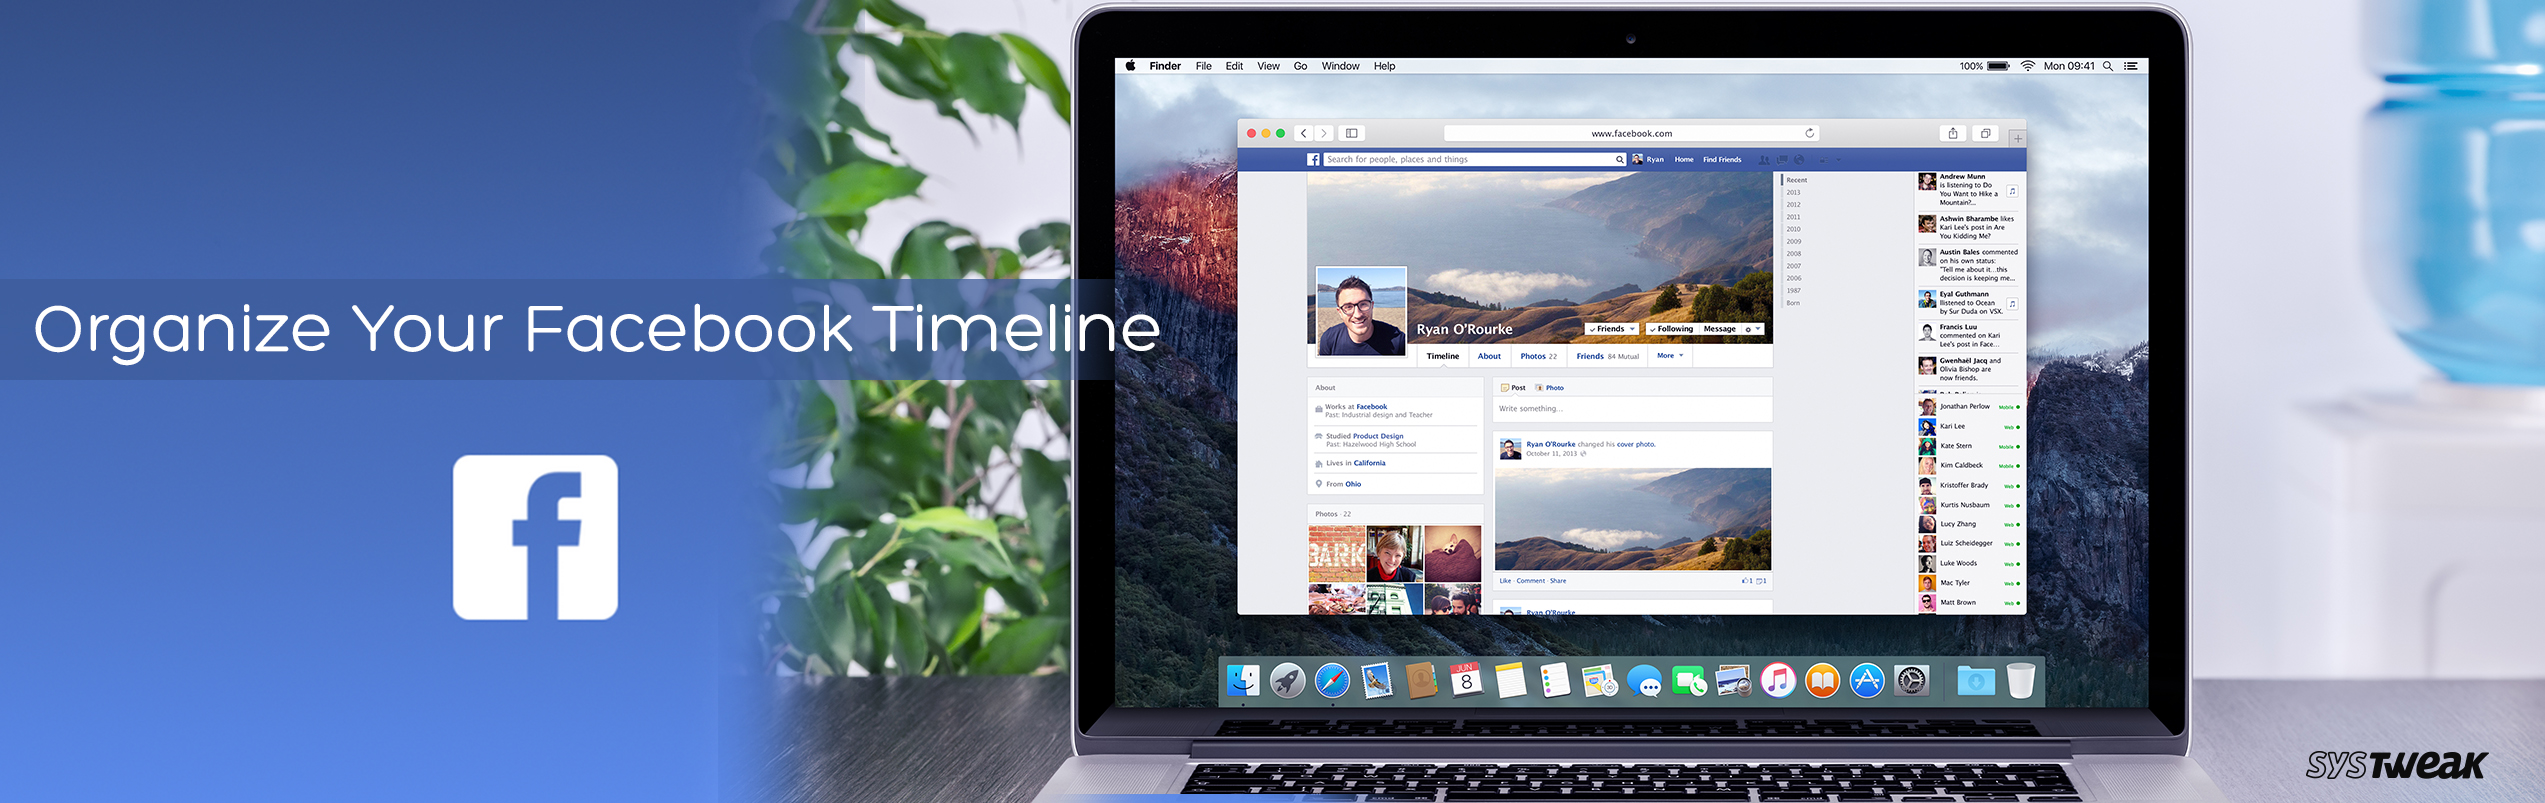 How To Organize Your Facebook Timeline